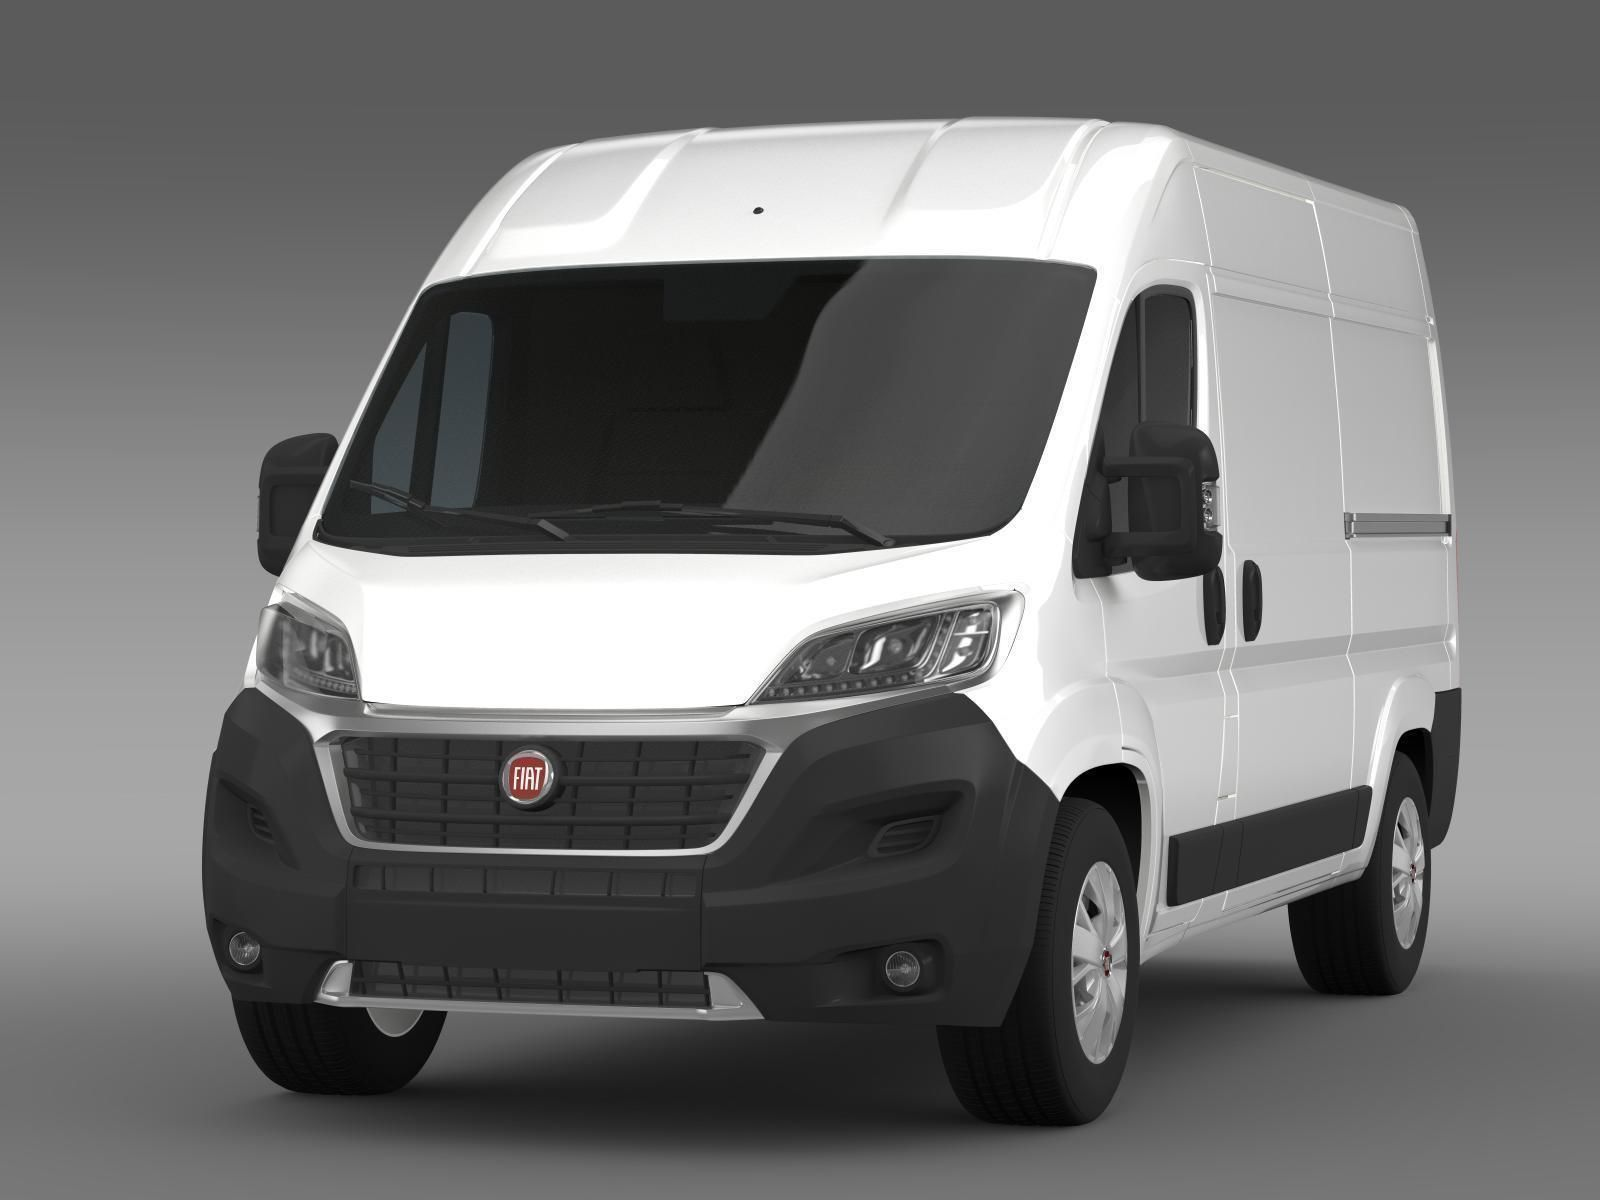 fiat ducato van l2h2 2015 3d model max obj 3ds fbx. Black Bedroom Furniture Sets. Home Design Ideas